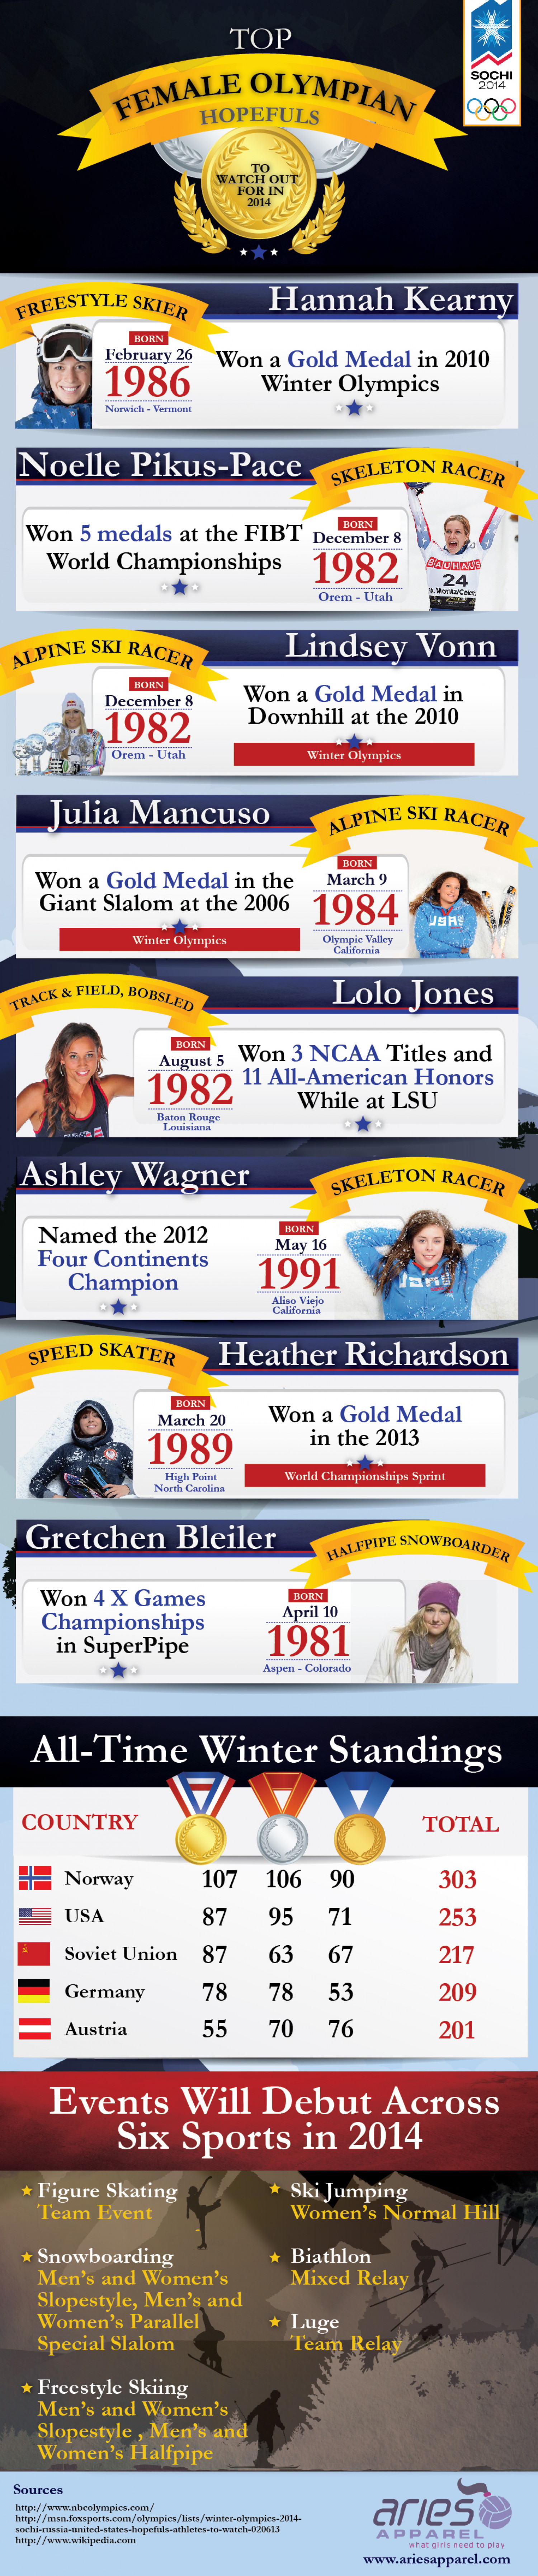 Top Female Olympian Hopefuls To Watch Out For In 2014 Infographic